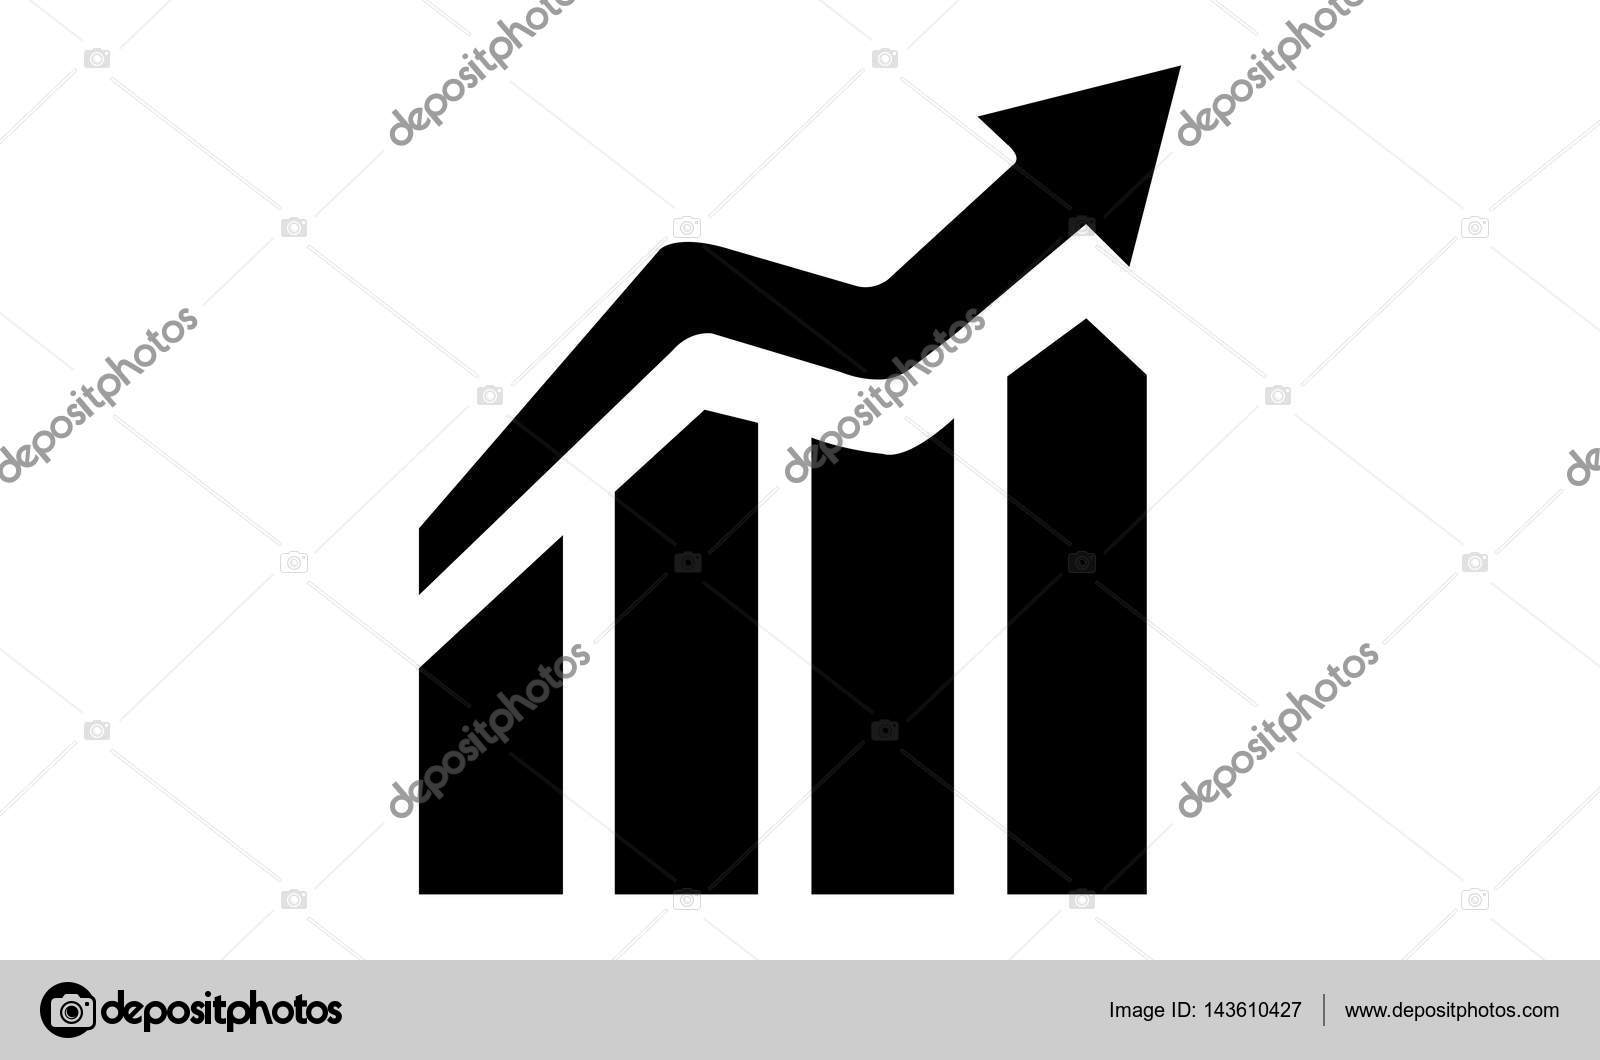 Pictogram growth increase expansion diagram graph chart pictogram growth increase expansion diagram graph chart scale statistic object icon symbol photo by infovs cd ccuart Image collections